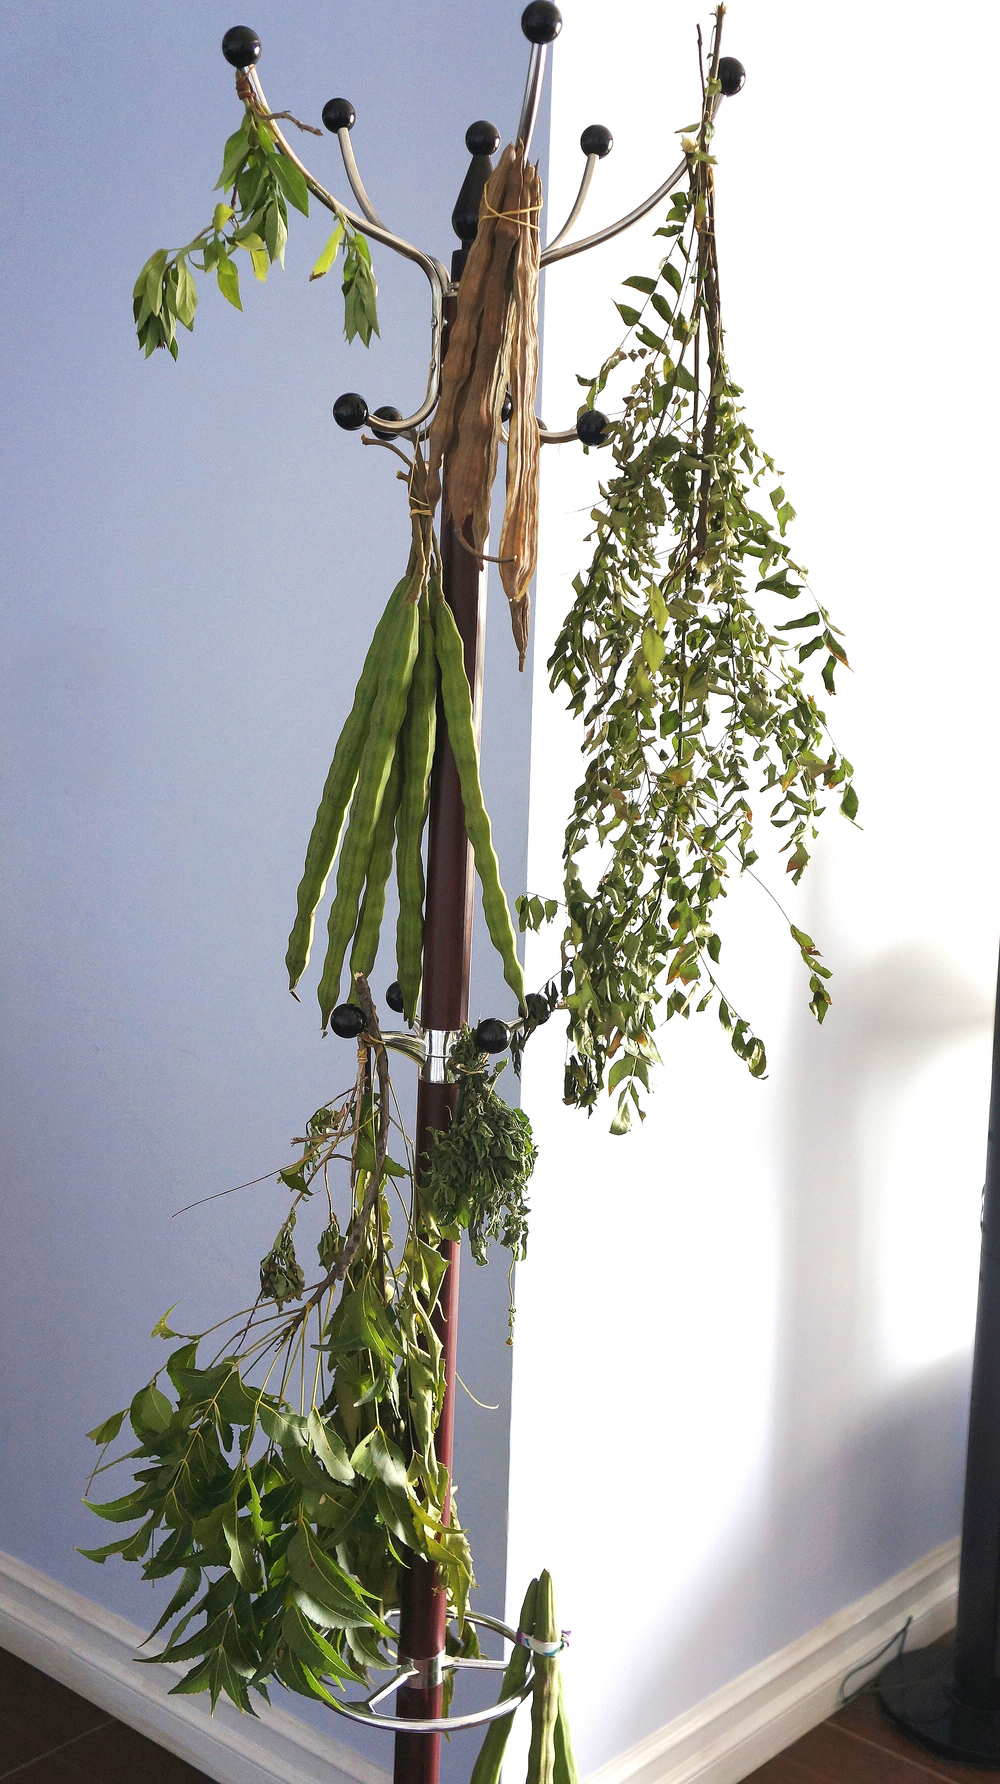 A coat hanger is perfect for drying leaves